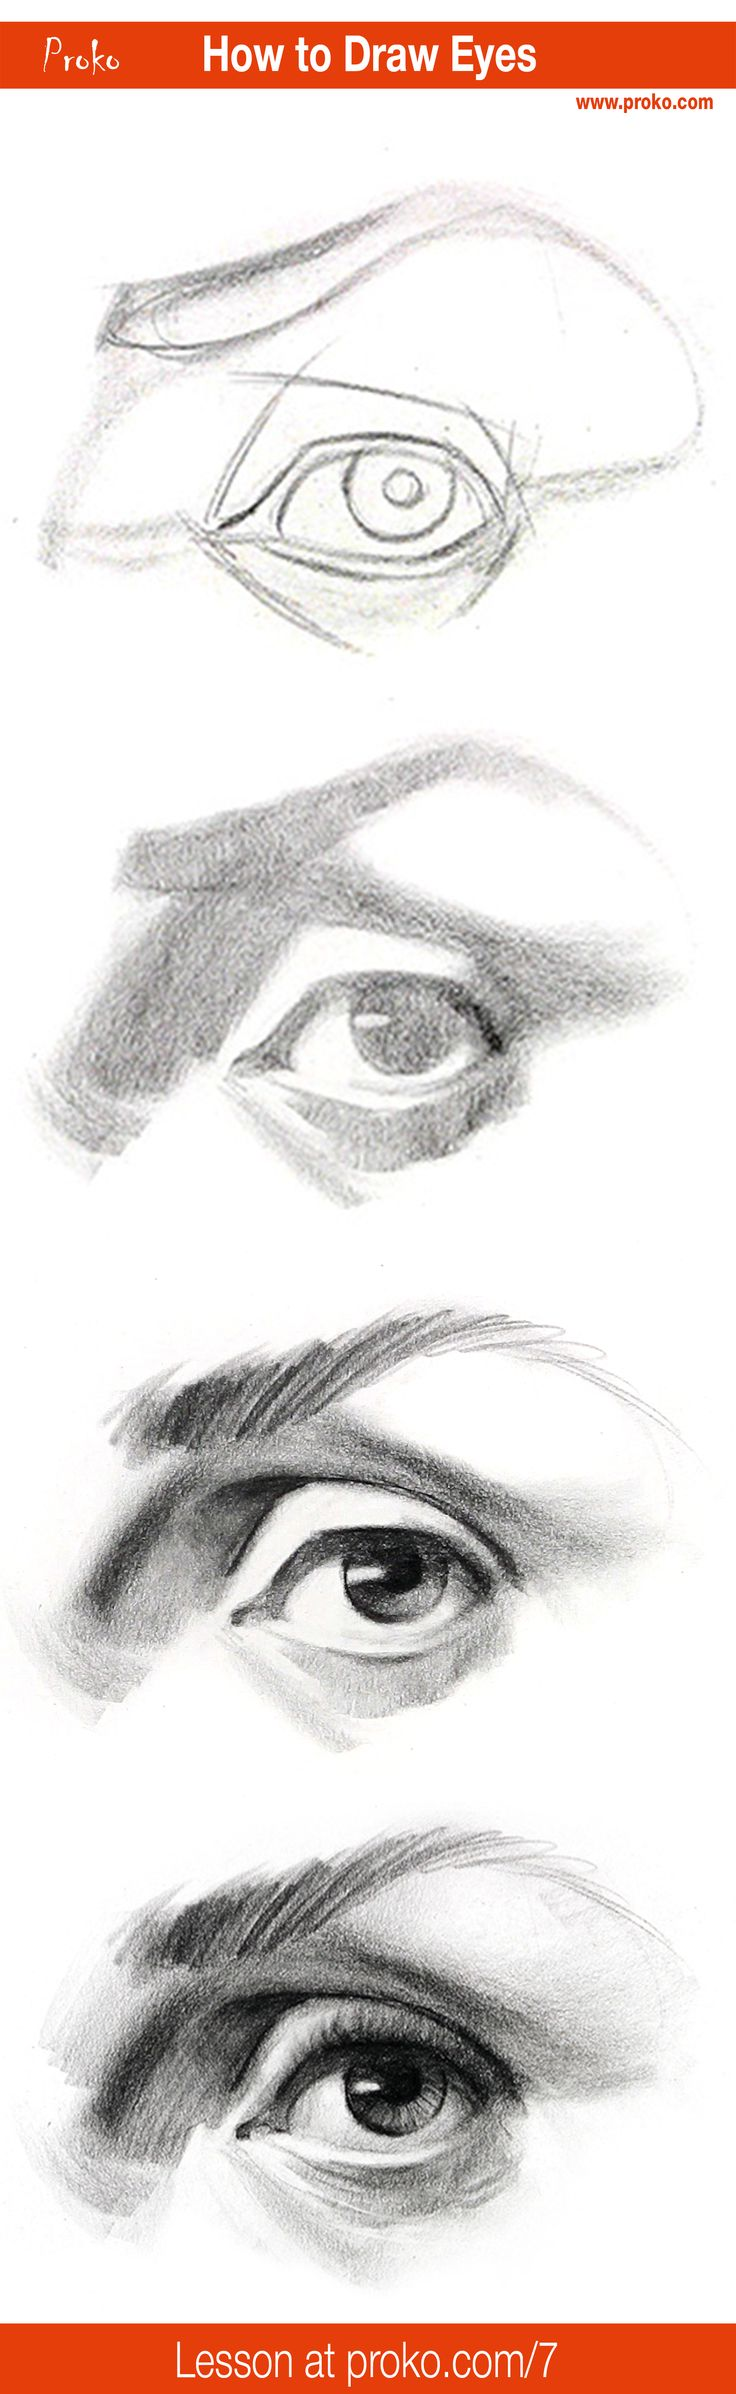 Draw Realistic Eyes With This Stepbystep Instruction Full Drawing Lesson  At